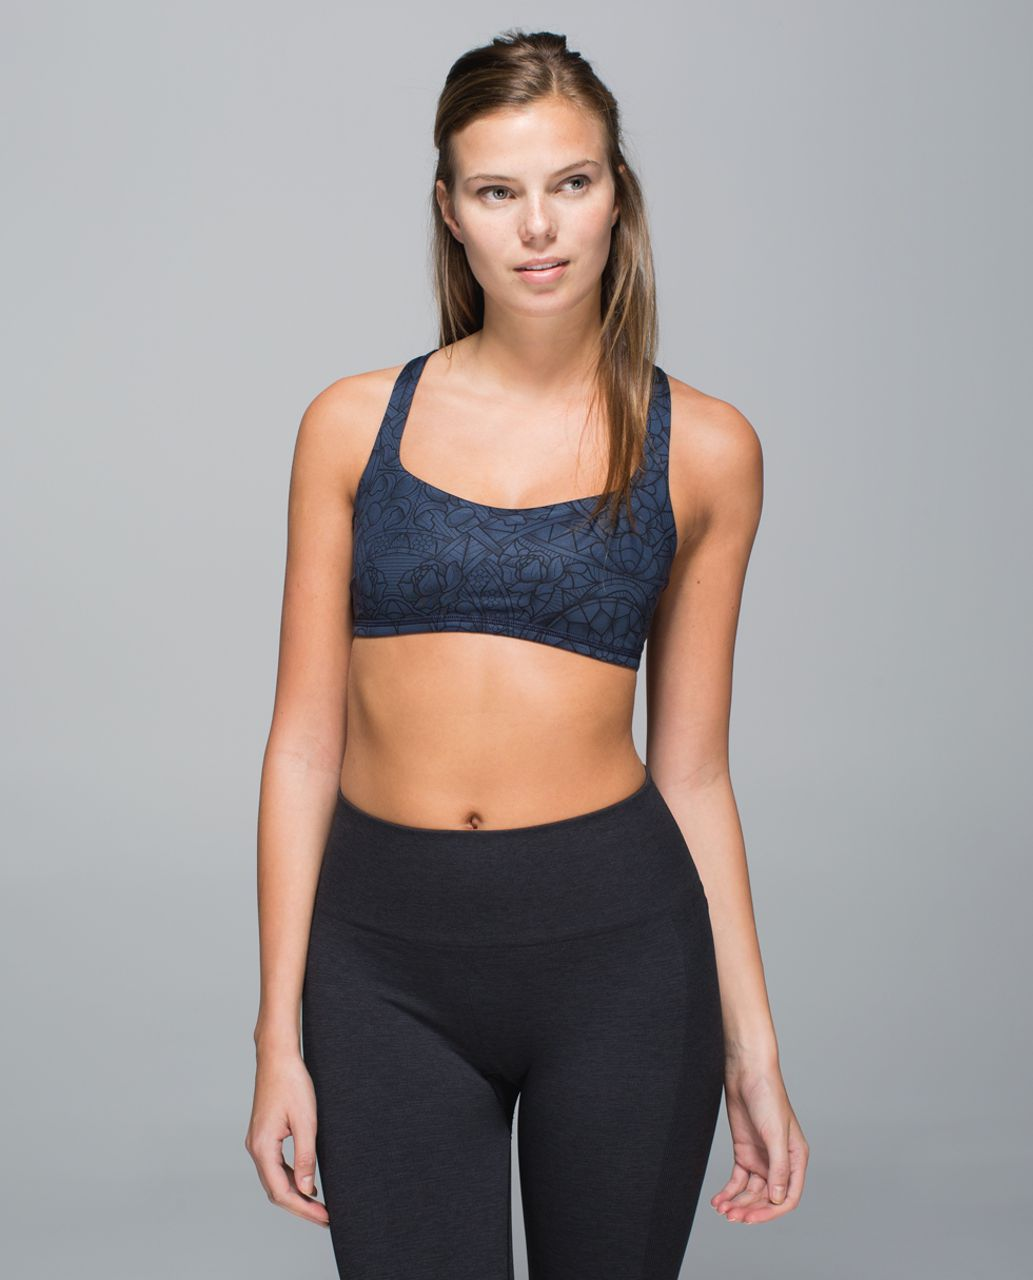 Lululemon Free To Be Bra - Prisma Inkwell Black